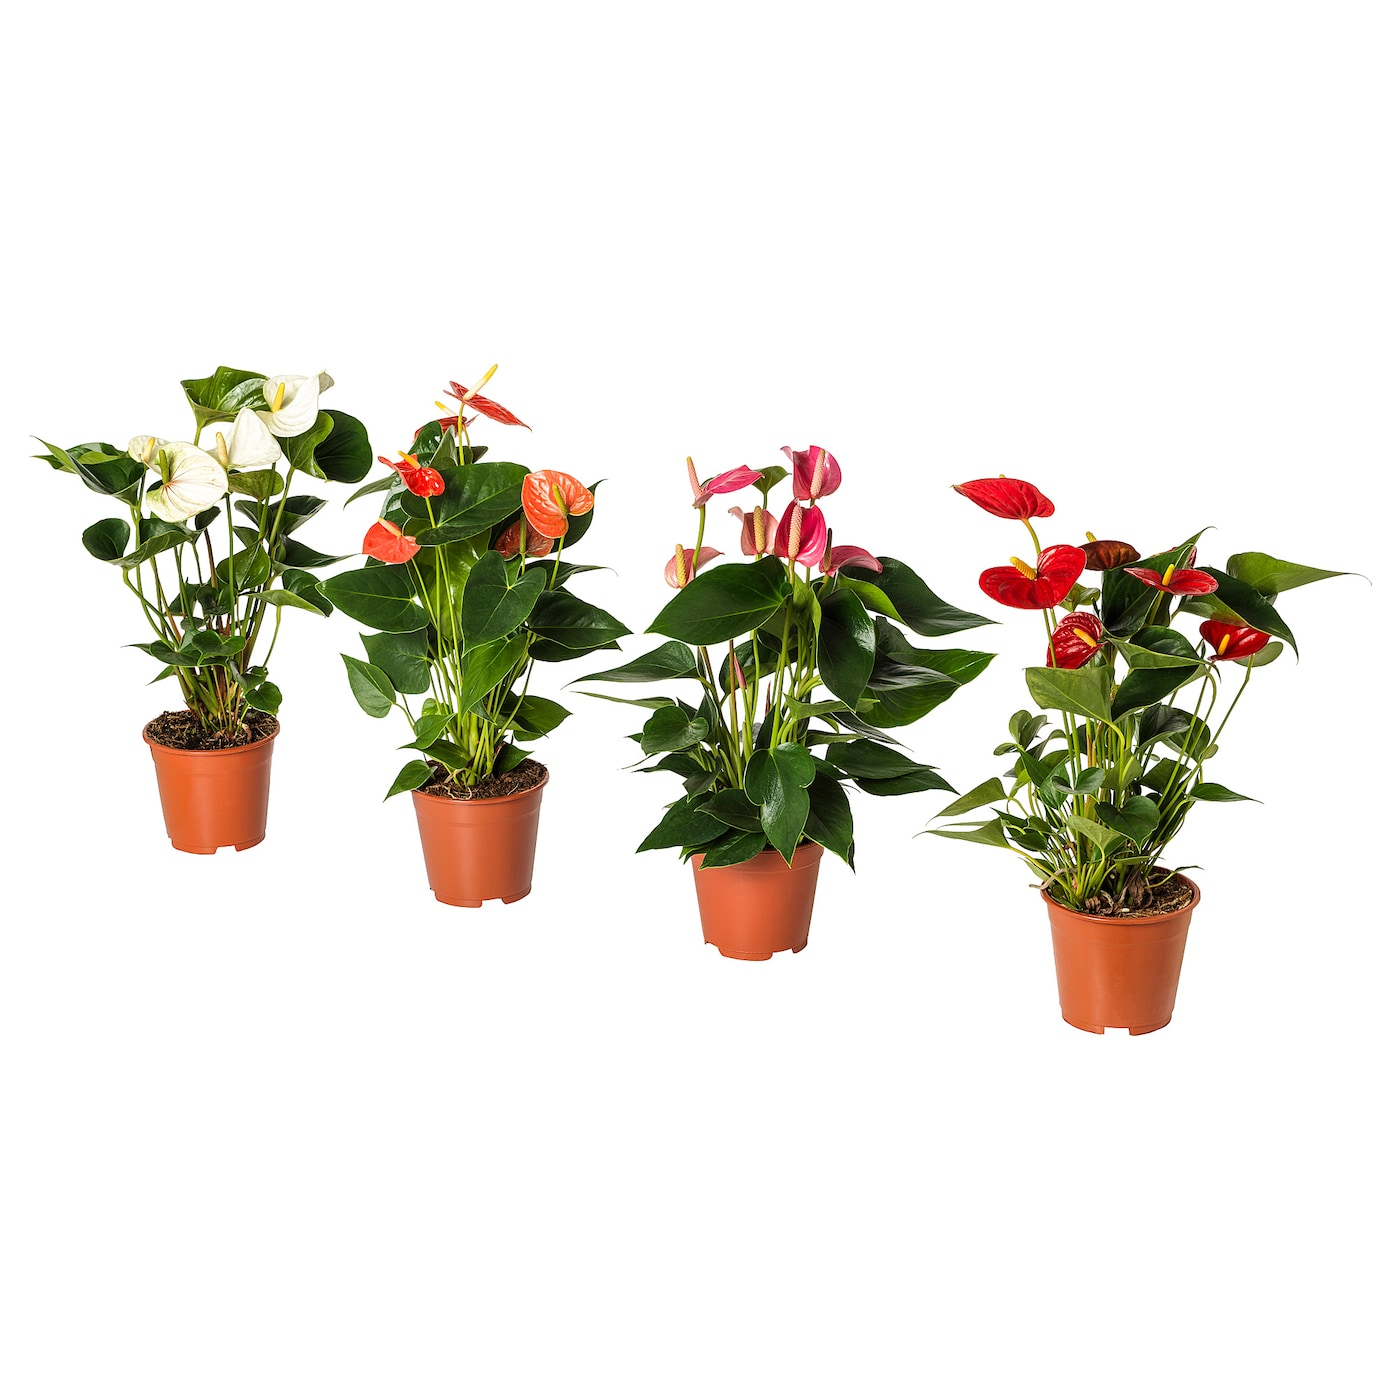 anthurium plante en pot 14 cm ikea. Black Bedroom Furniture Sets. Home Design Ideas